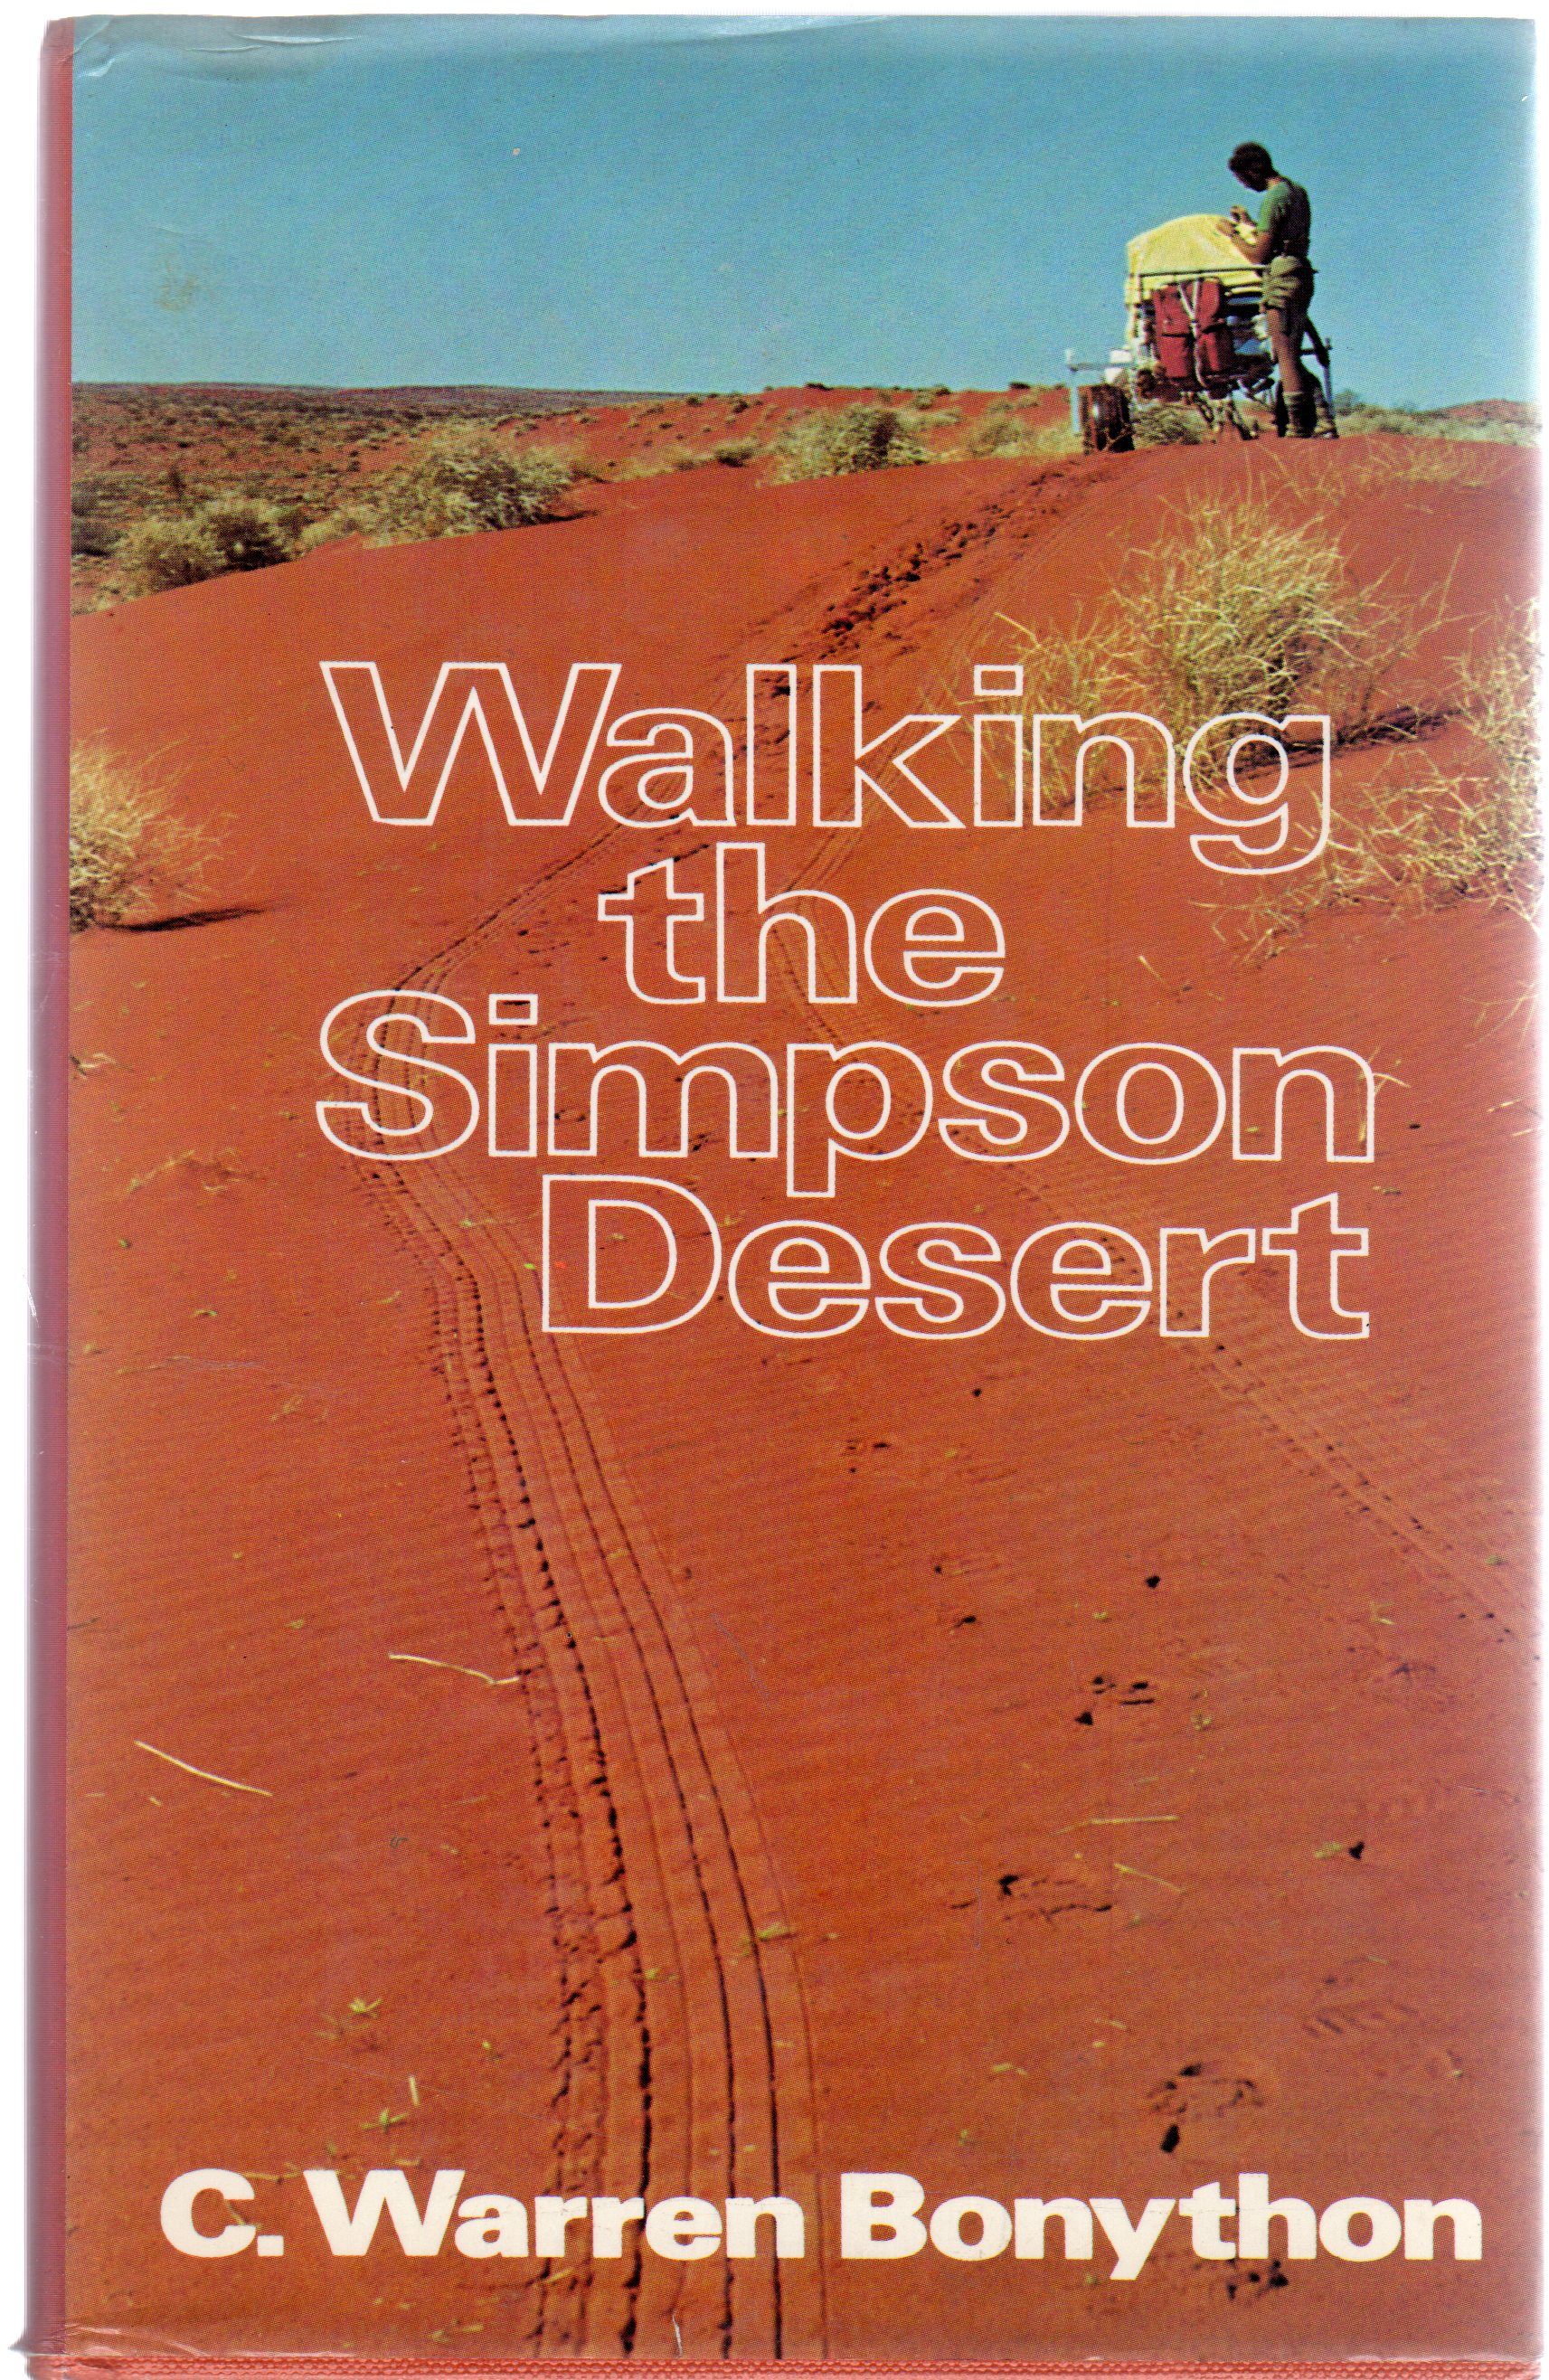 Image for Walking the Simpson Desert